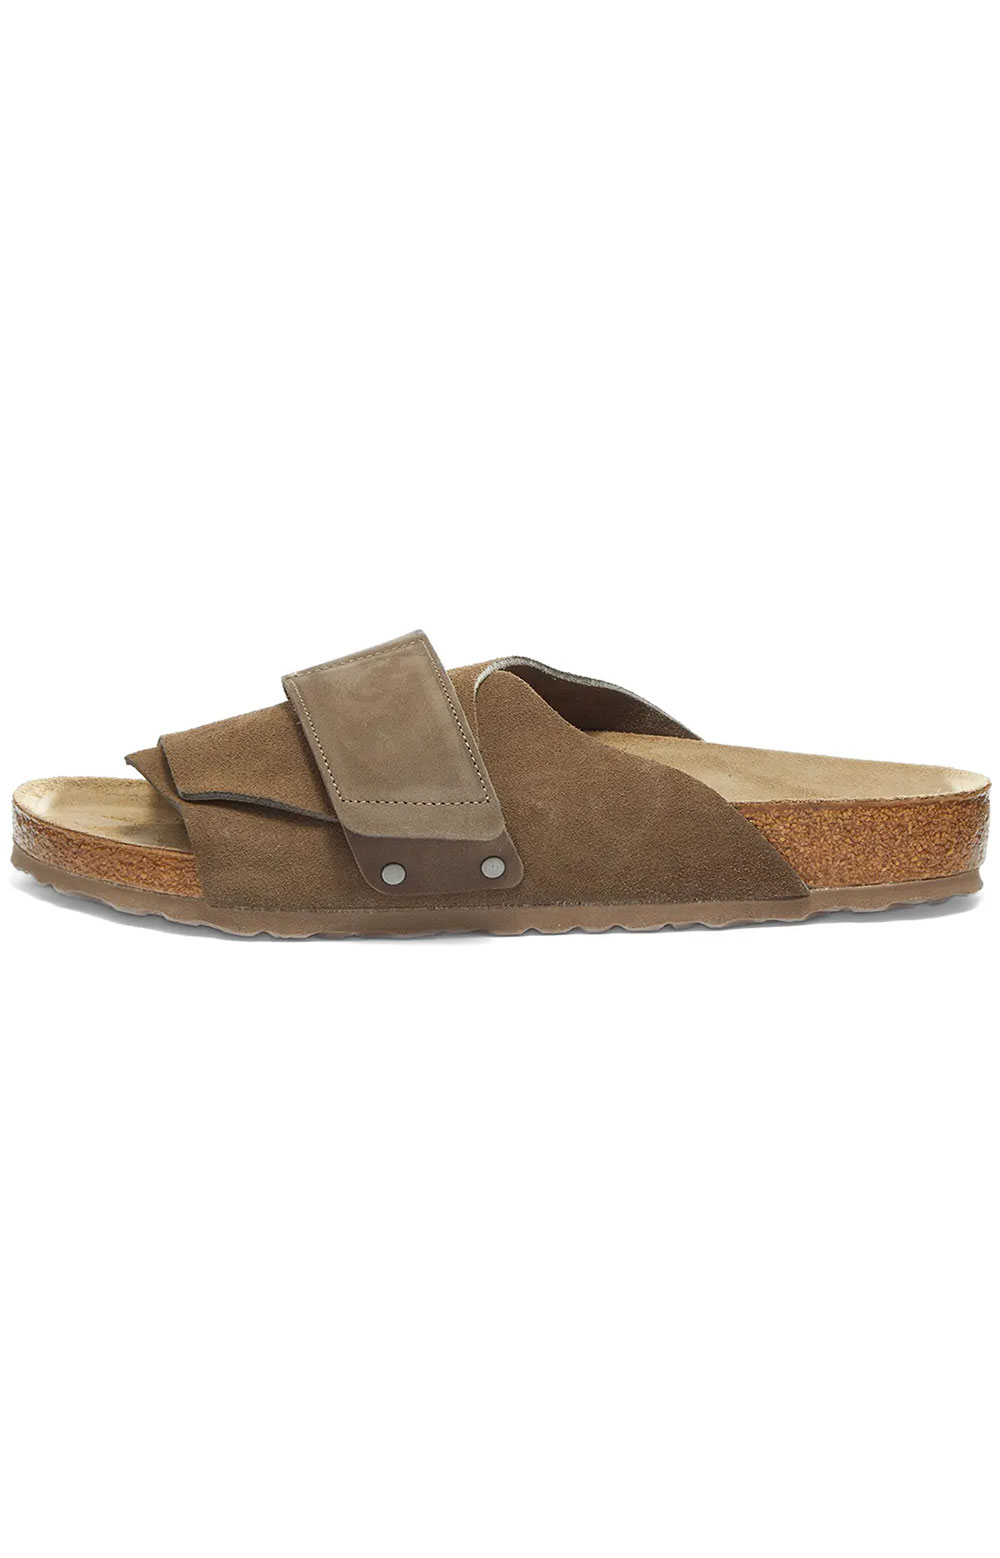 (1017501) Kyoto Sandals - Concrete Grey Suede  3